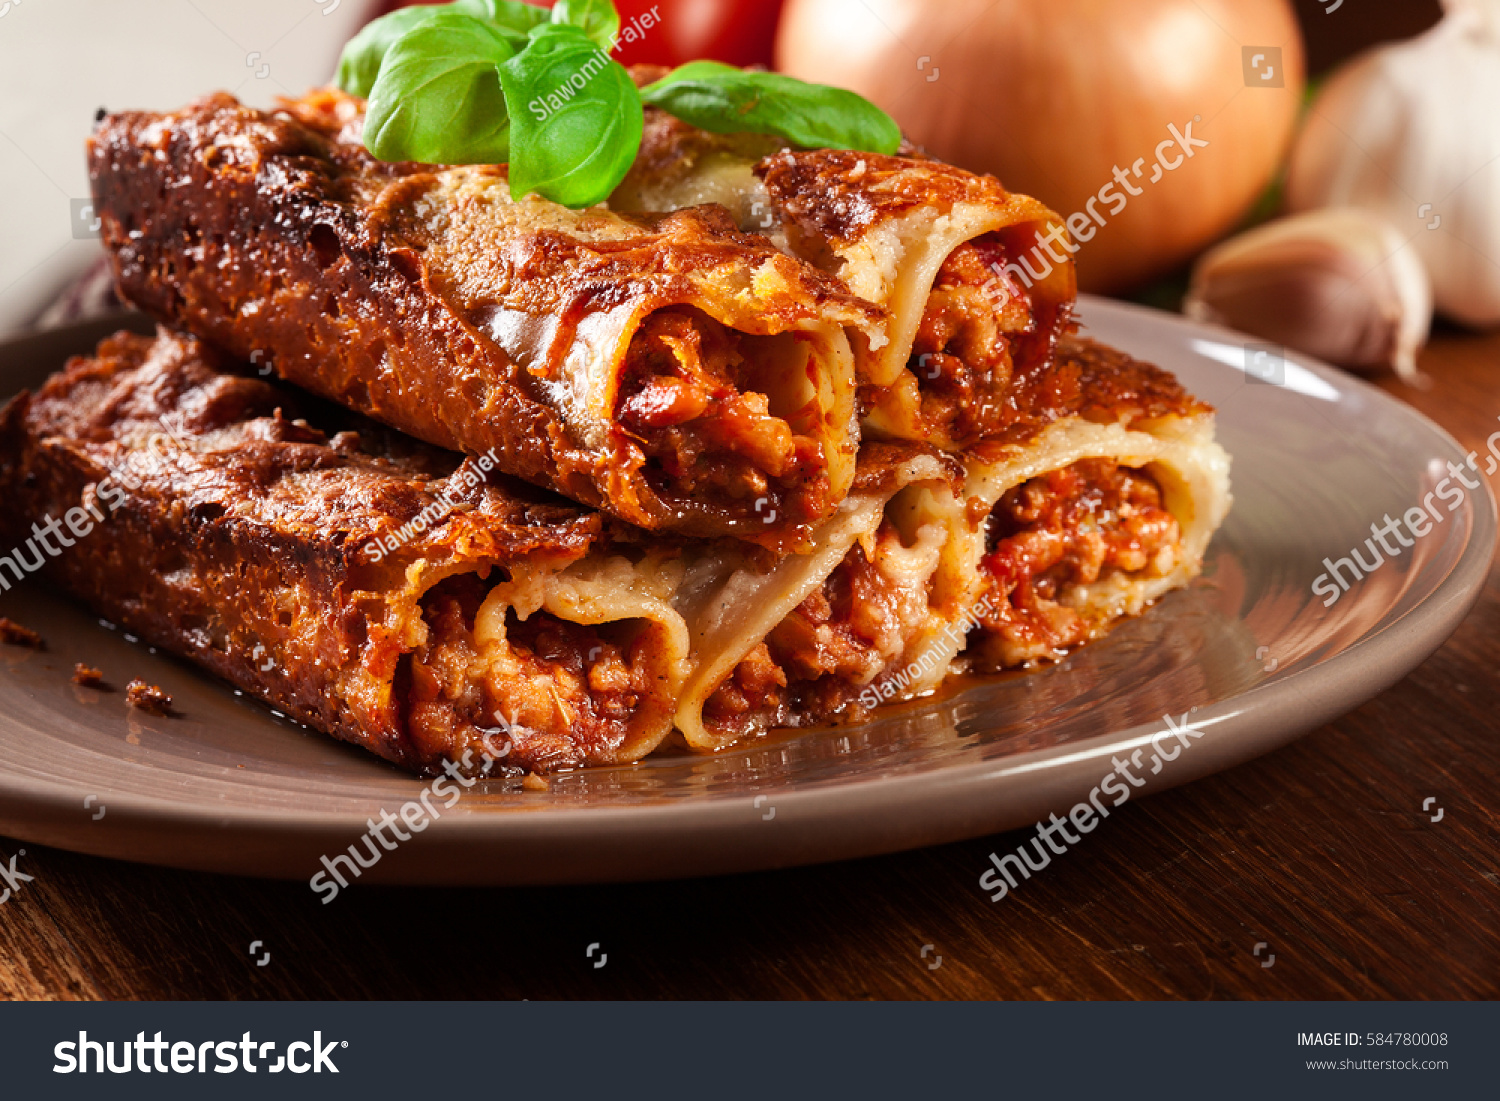 Baked Cannelloni Minced Meat Bechamel Sauce Stock Photo ...